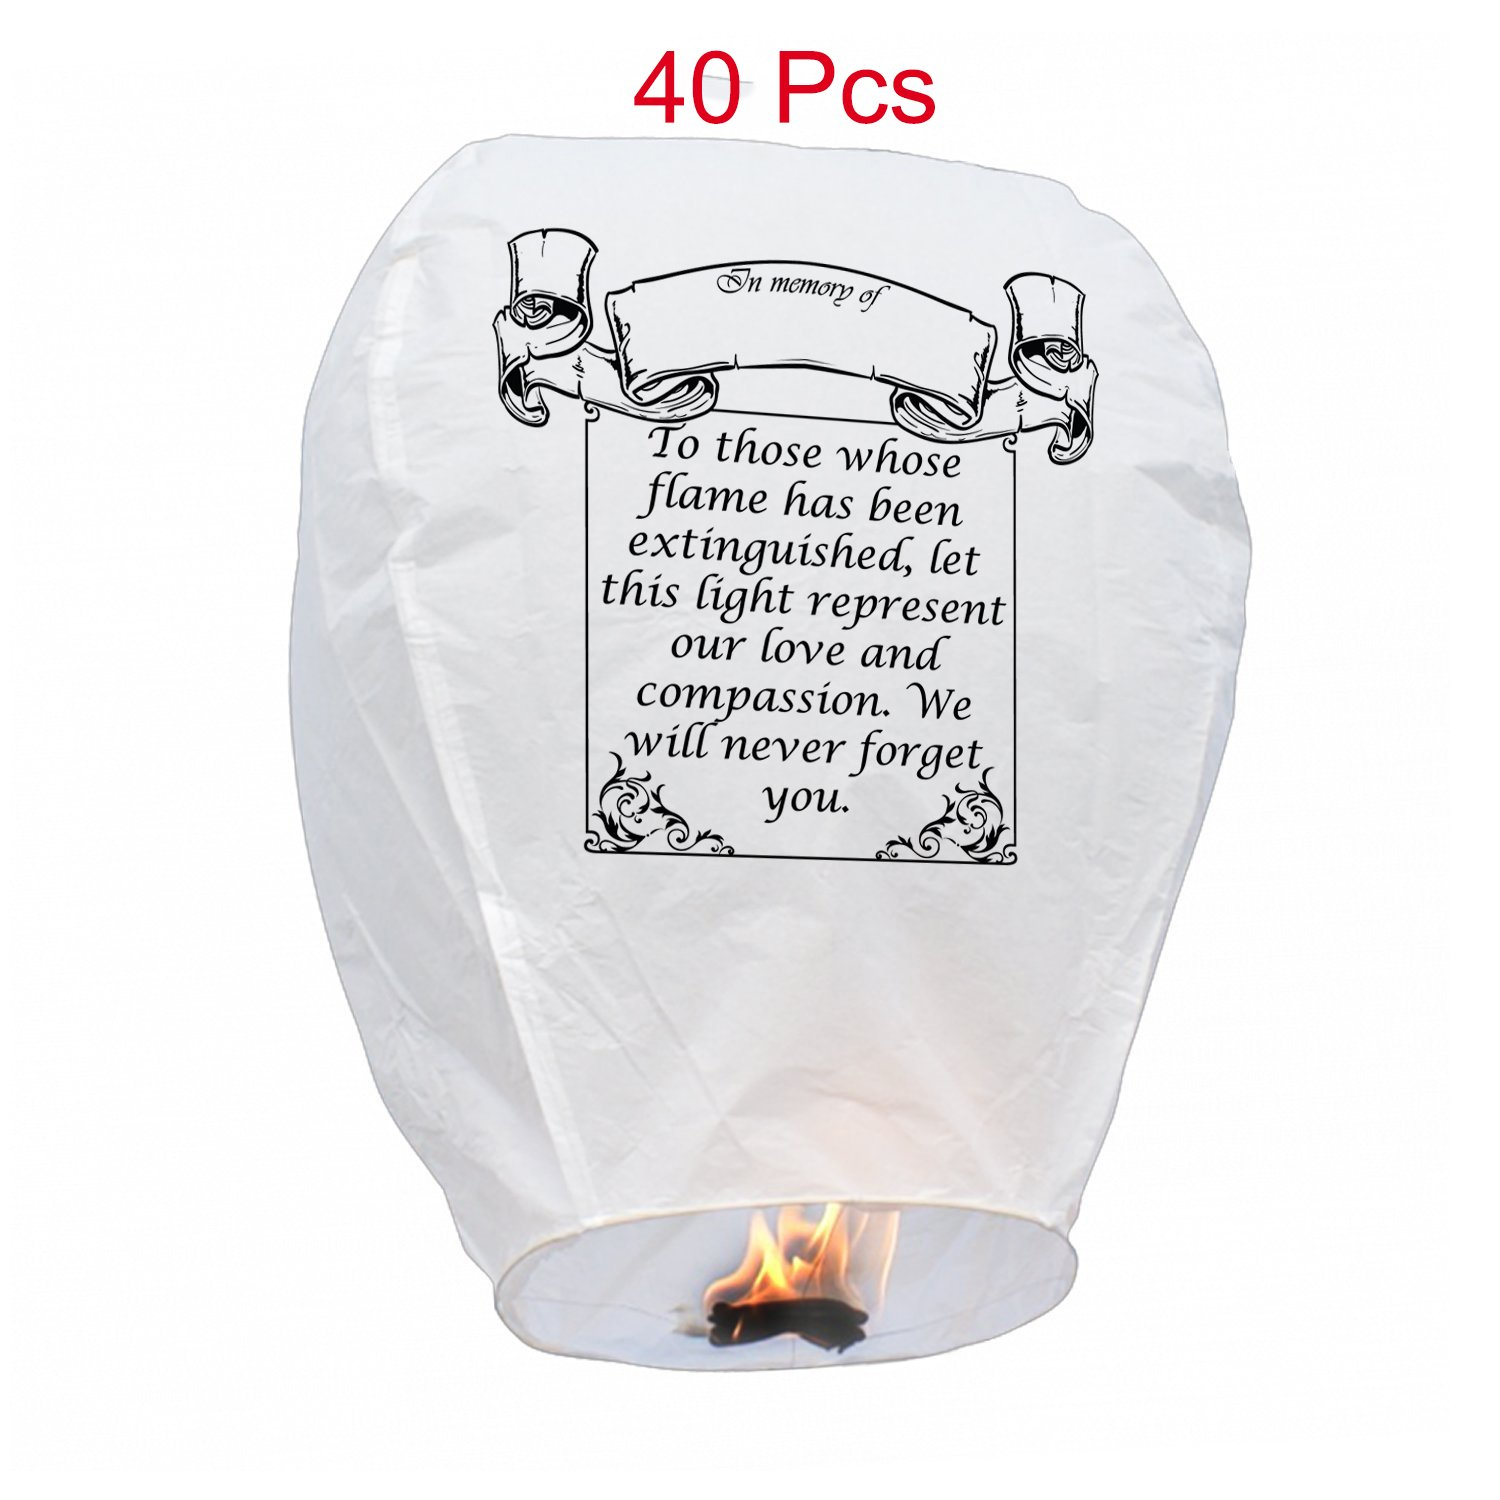 40 PCS White Sky Lanterns Biodegradable-Flying Wish Lights (40) by RMBD